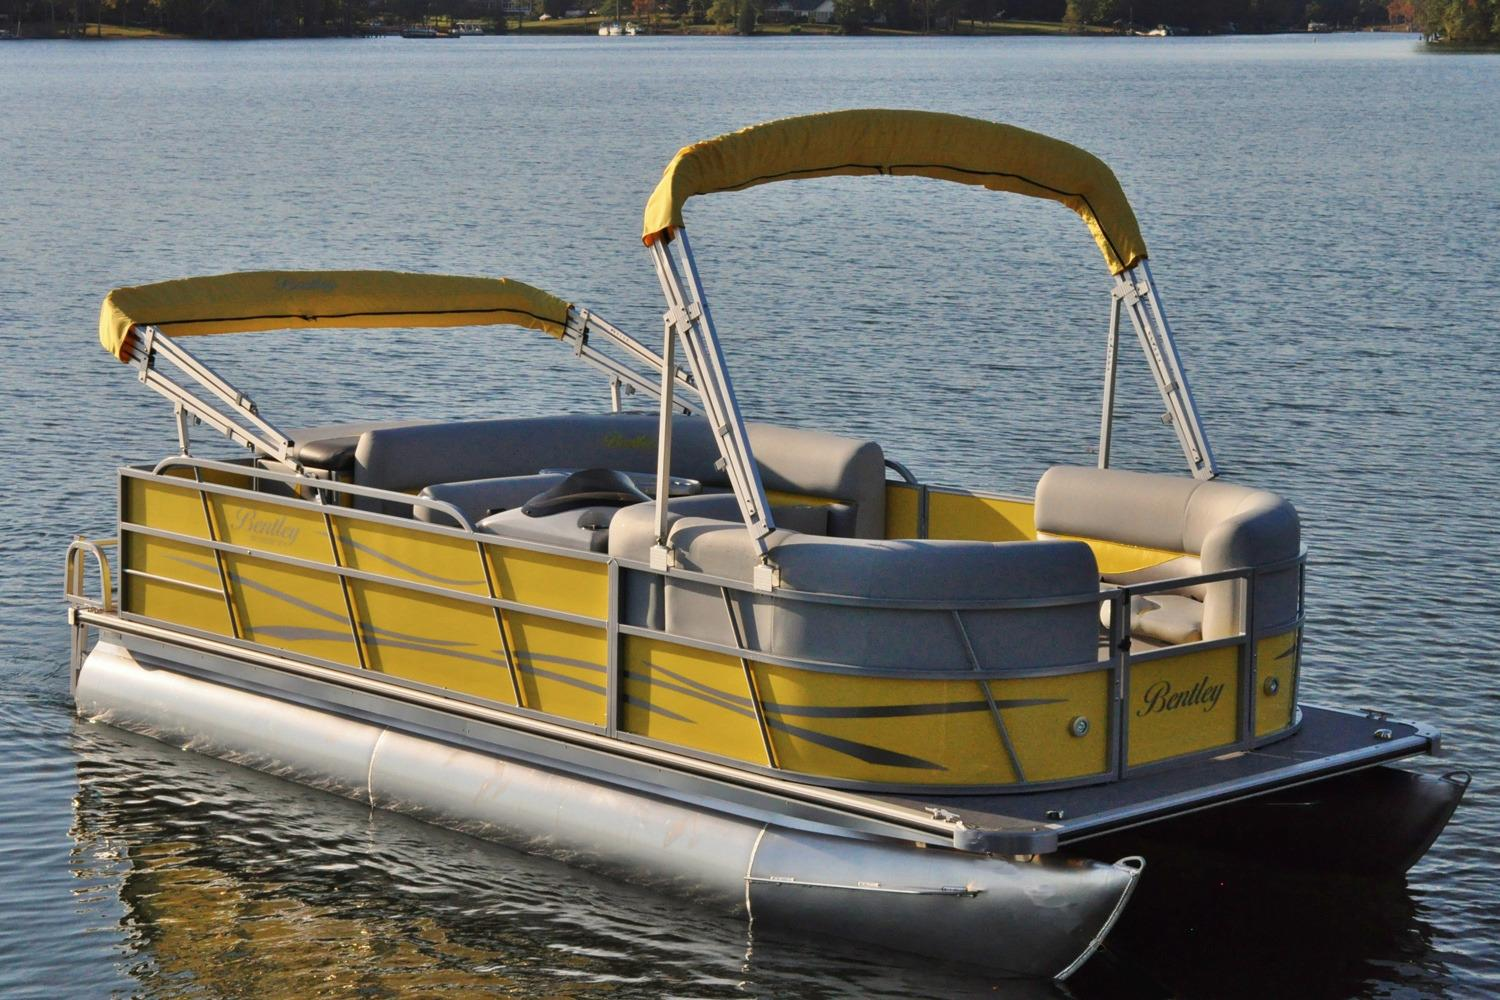 Bentley pontoon for sale